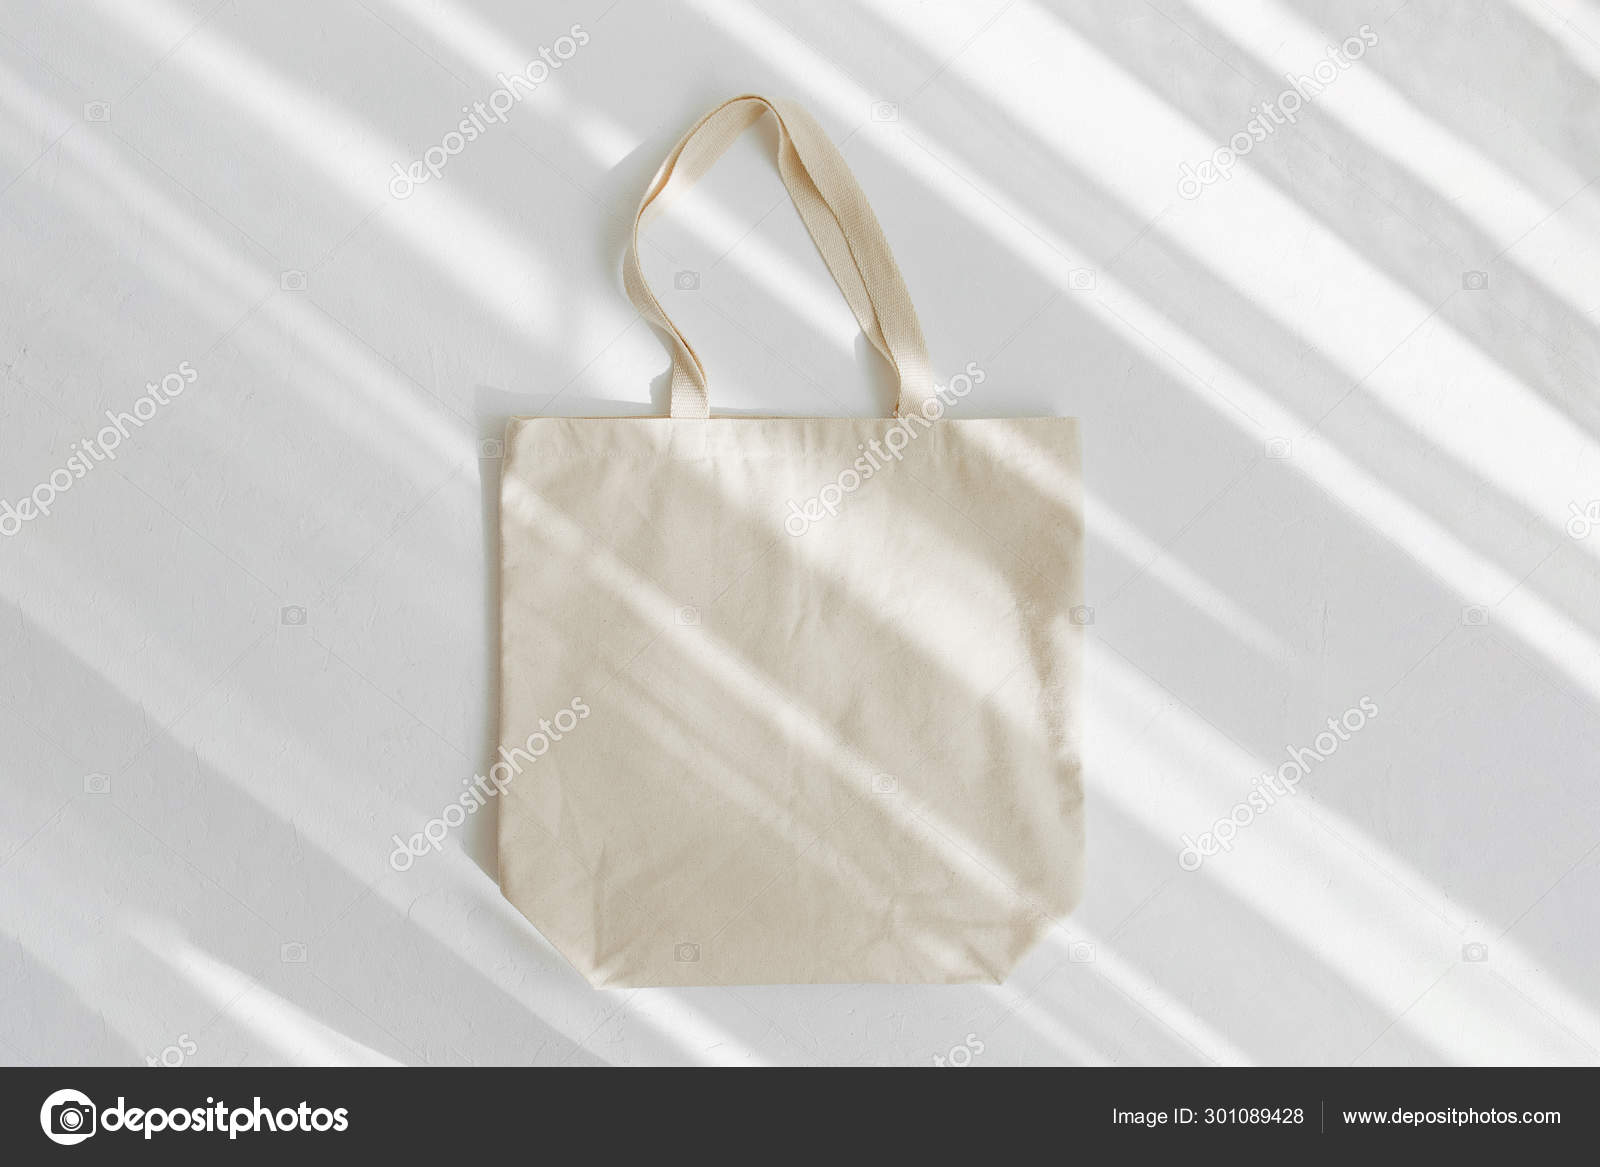 Moreover, if your brand has something to do with nature, environment and ecology, again, this template creates a great atmosphere for presenting your work. White Eco Bag Mockup Blank Shopping Sack Copy Space Canvas Stock Photo By C Igishevamaria 301089428